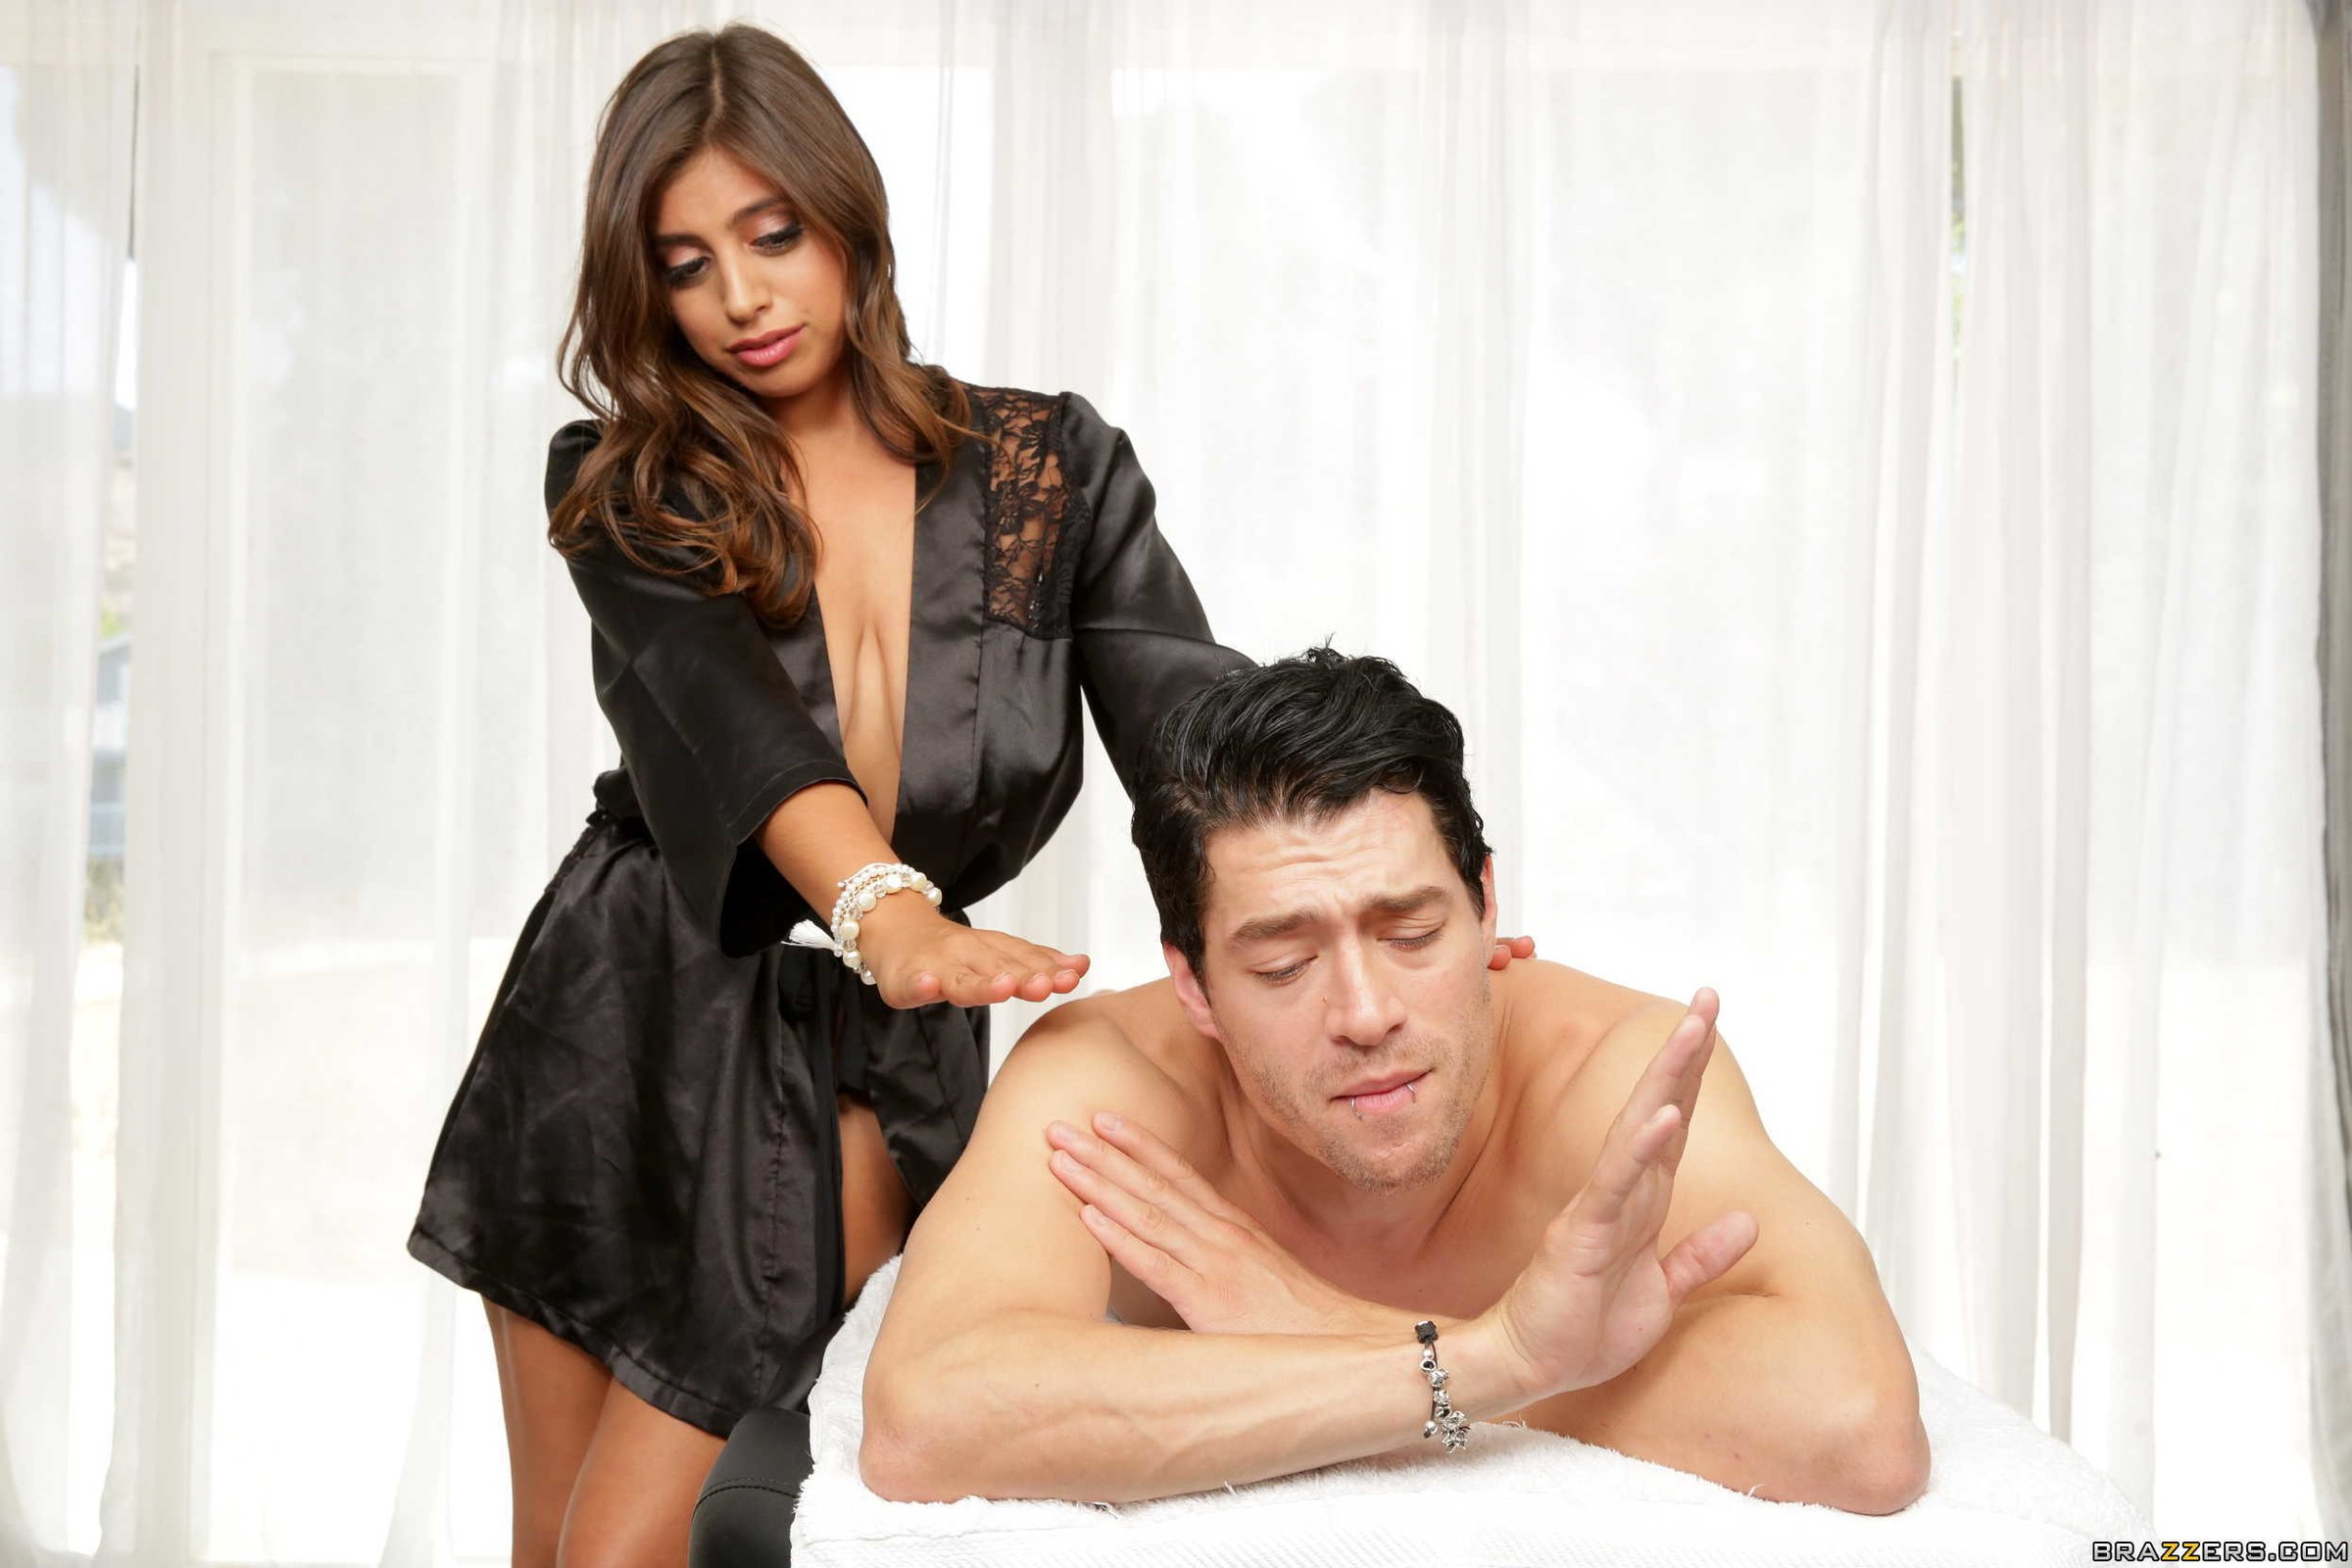 Female to Male Body to Body Massage in Vadodara -Spa & Salon-Massage-Deep Tissue Massage-Vadodara